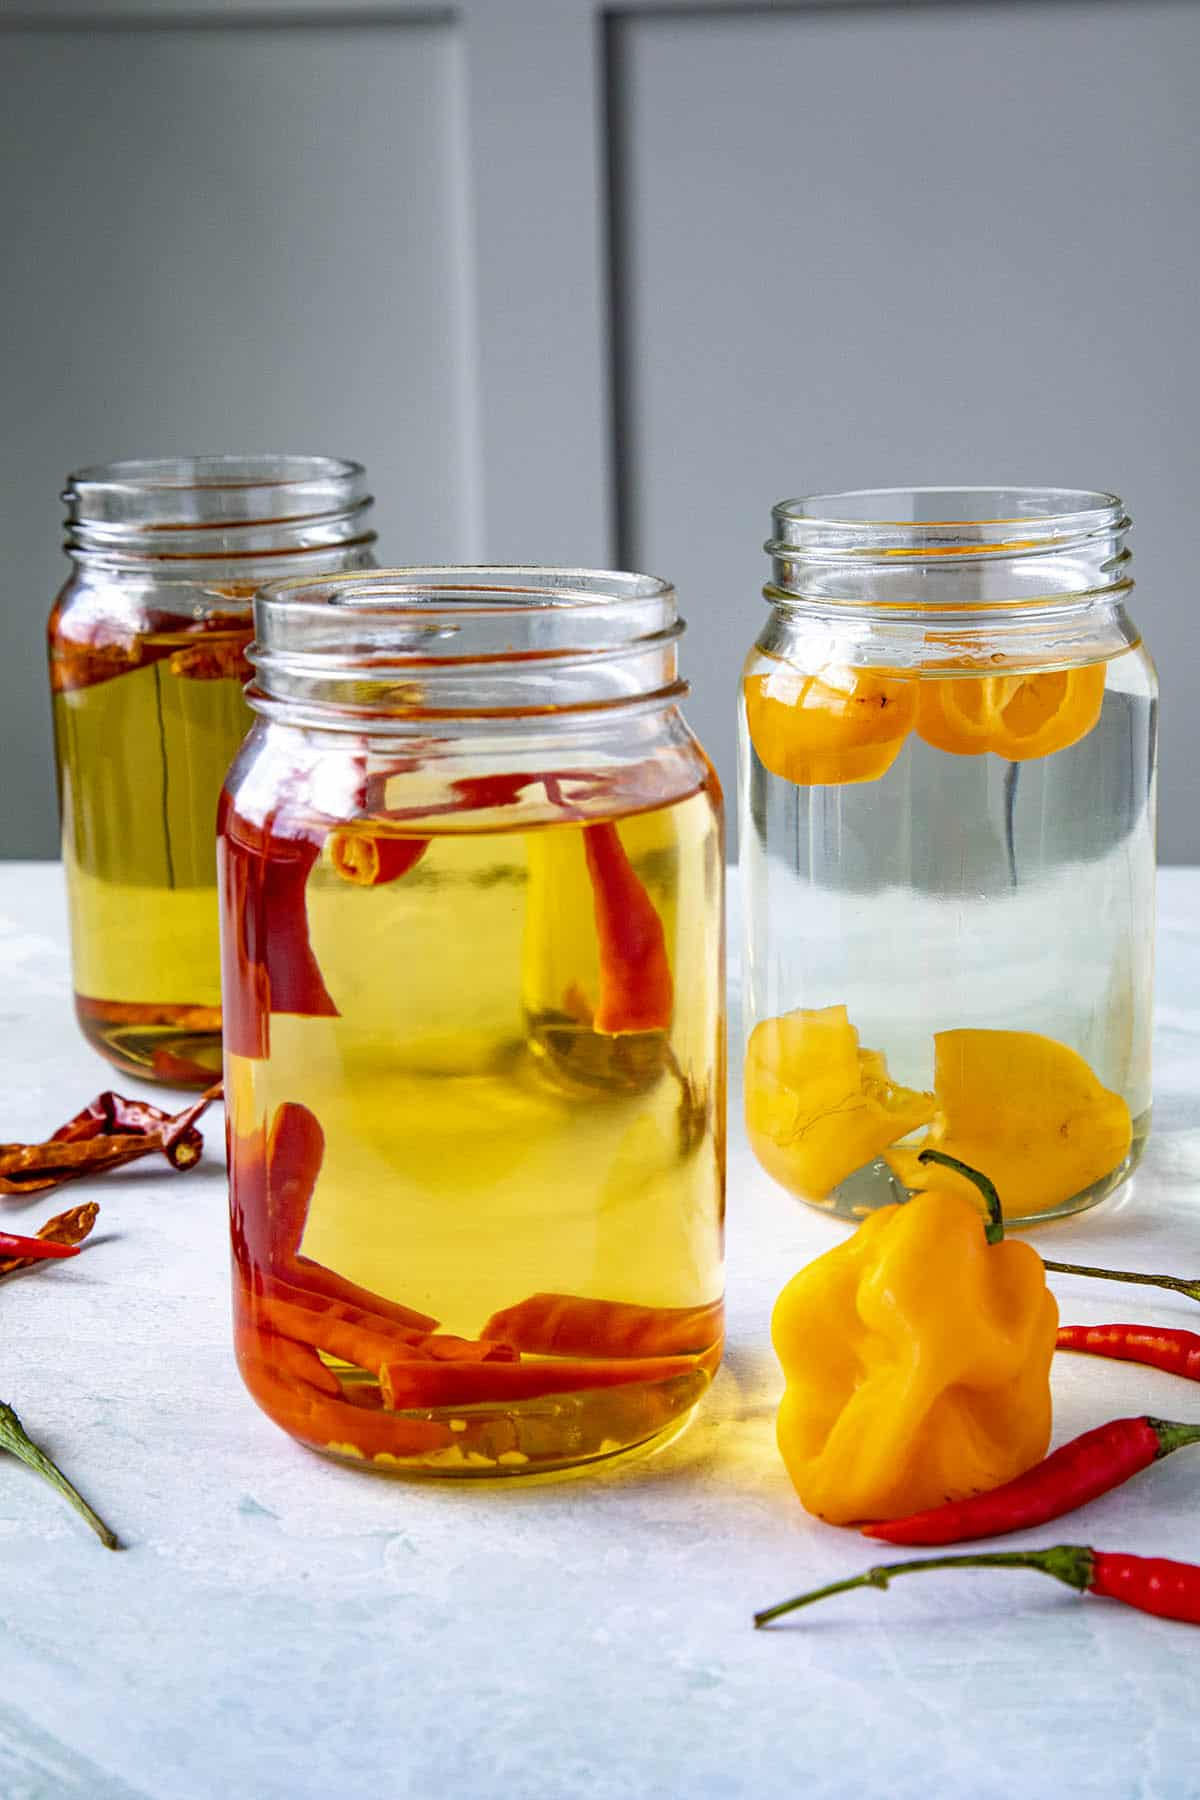 3 jars of spicy chili infused alcohols, including grain alcohol, tequila and vodka